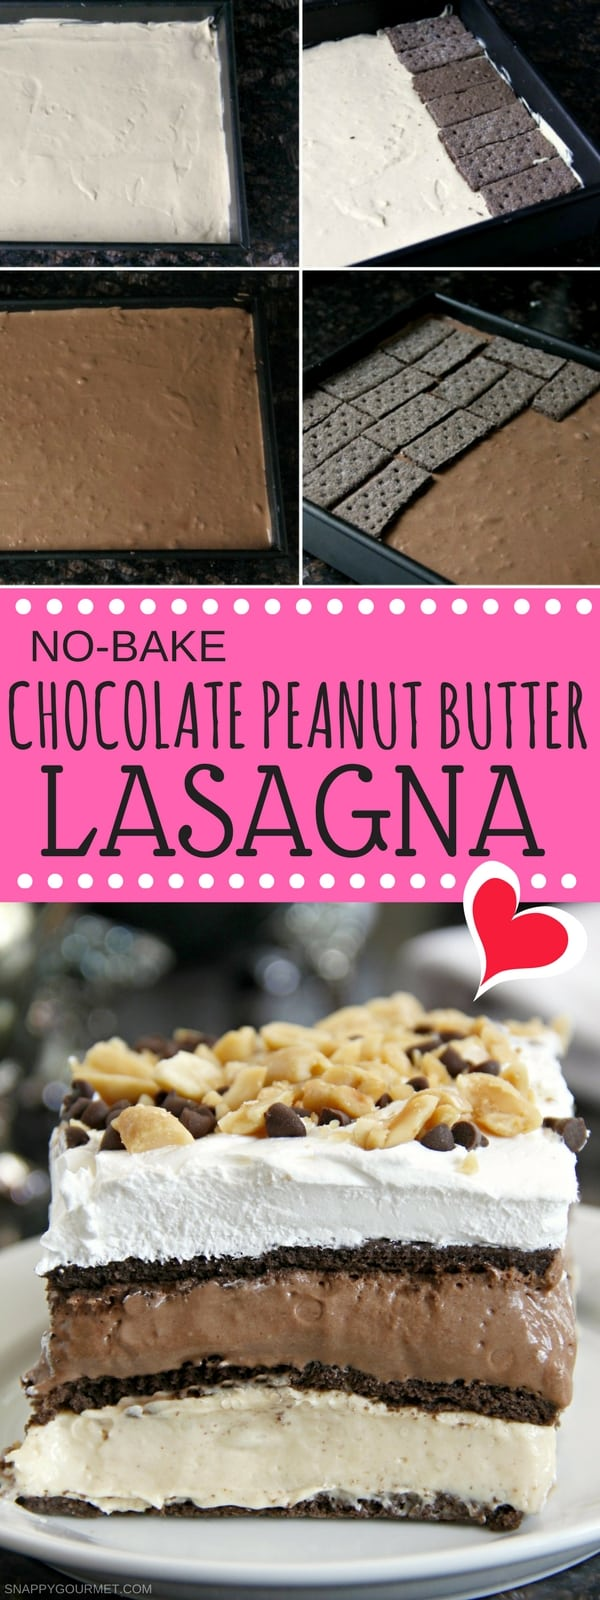 No Bake Chocolate Peanut Butter Lasagna Recipe - an easy homemade icebox or refrigerator cake (graham cracker cake) with a layer of chocolate and peanut butter. Best potluck dessert since it feeds a crowd! #Chocolate #PeanutButter #Potluck #SnappyGourmet